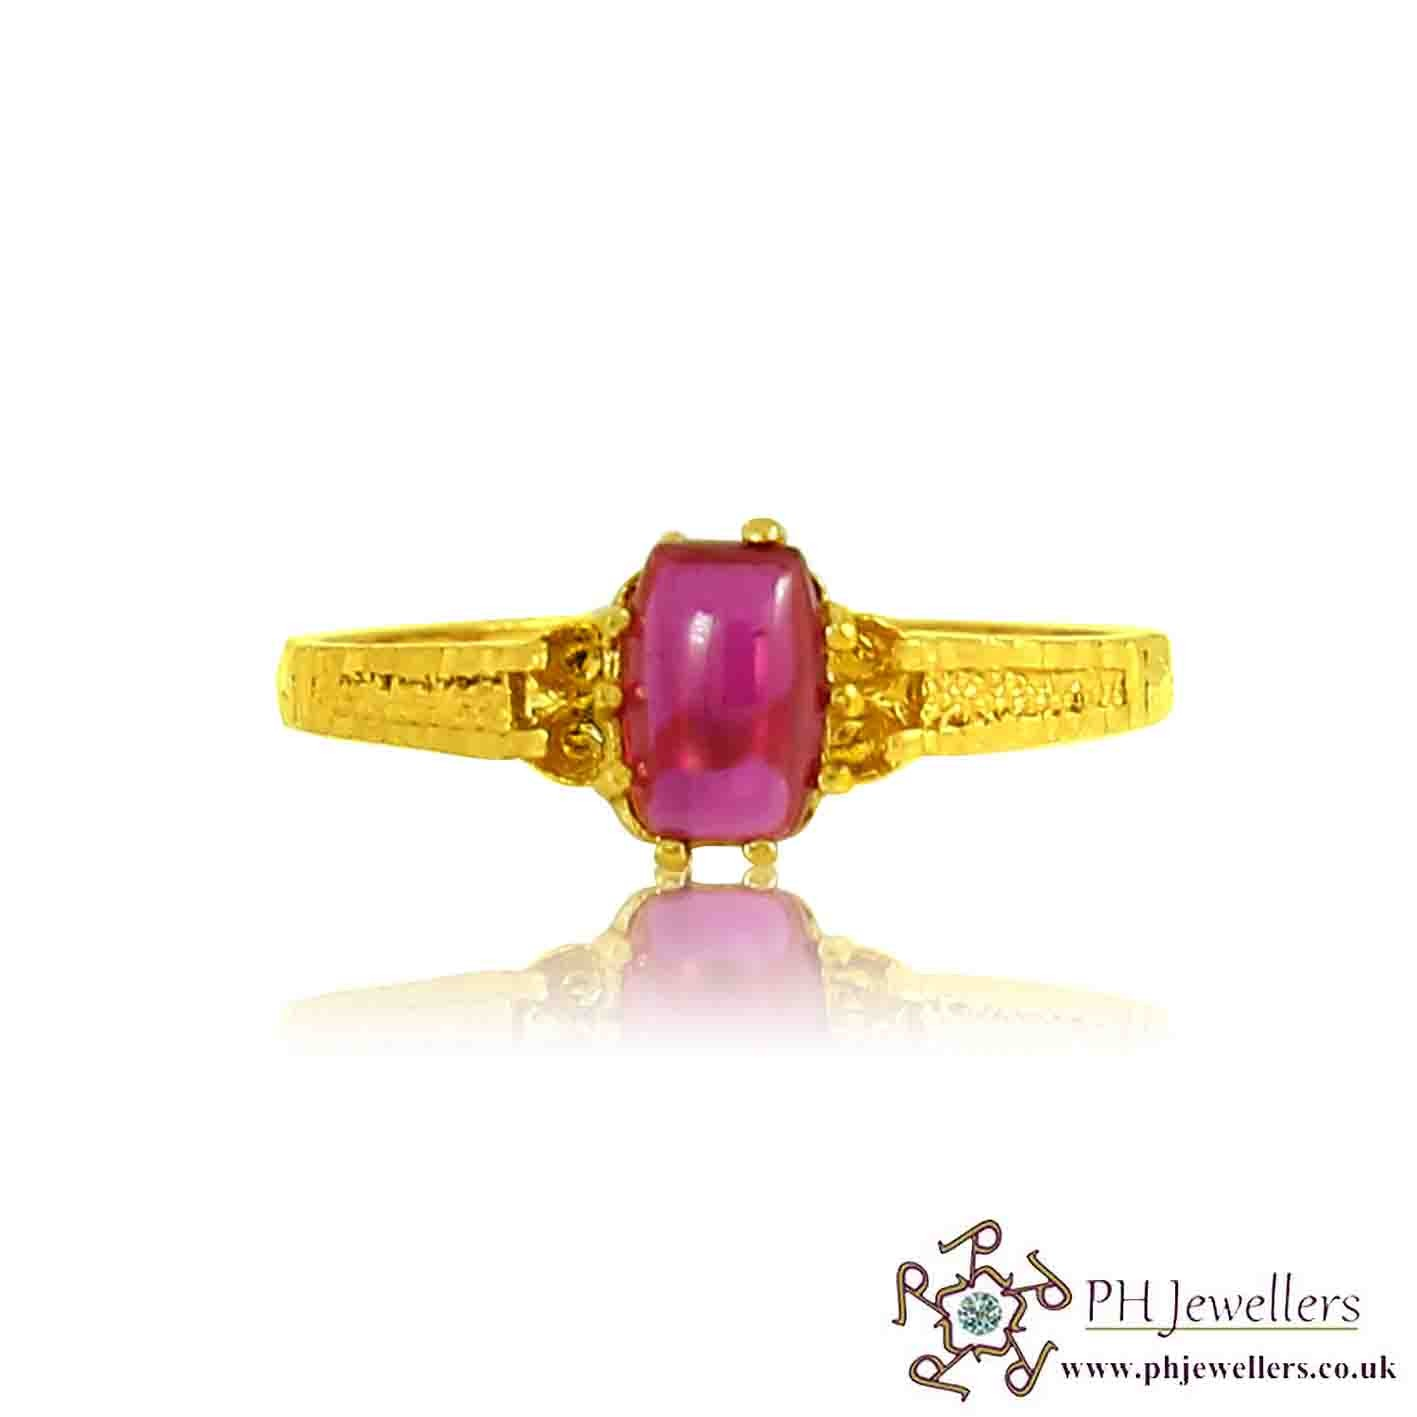 22ct 916 Hallmark Yellow Gold Ruby Size L,M Ring CZ SR93